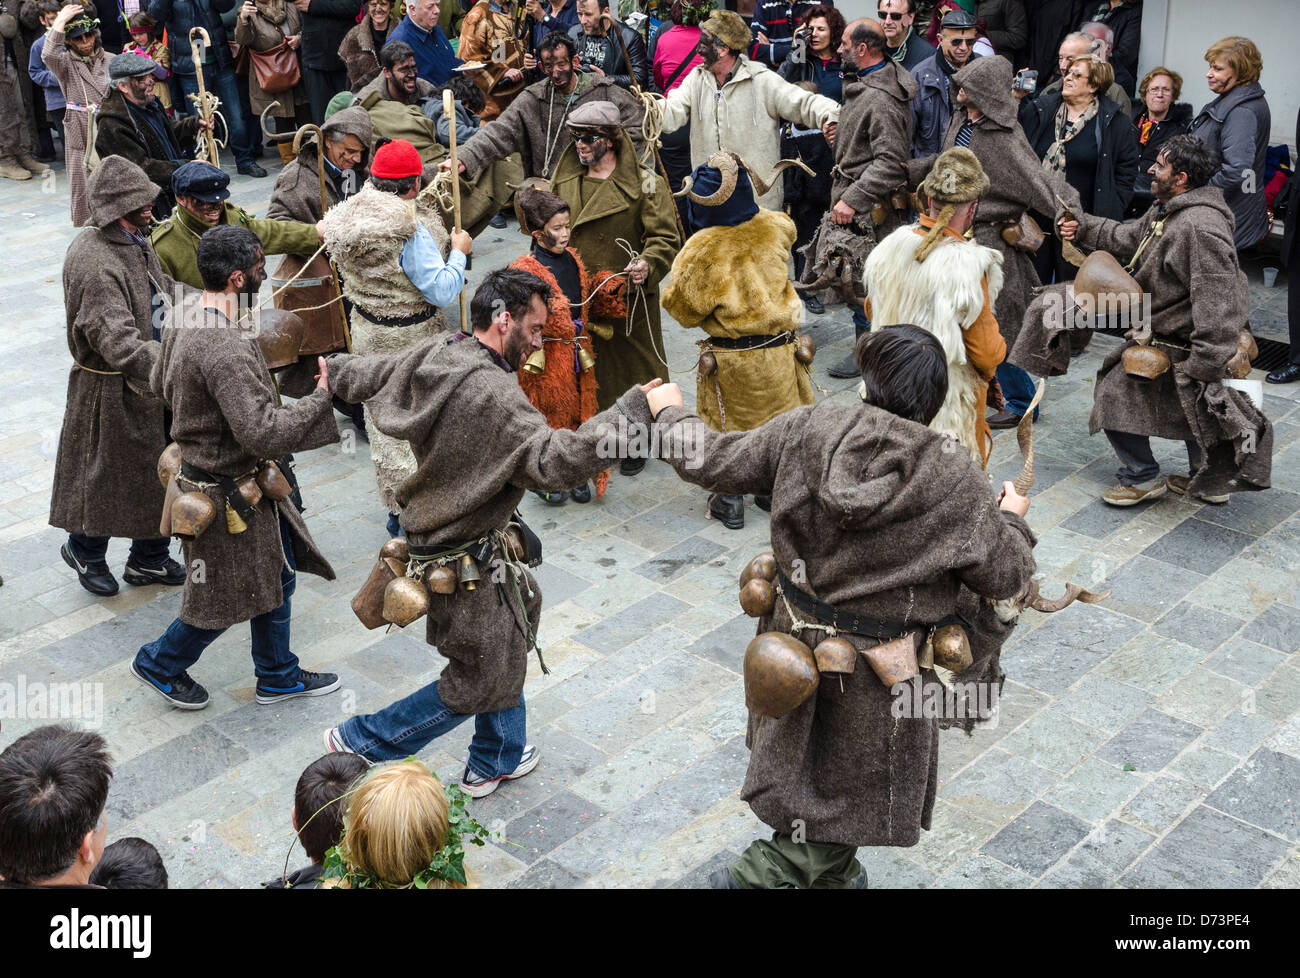 Pagan, rights of spring, festival held in the village of Nedousa, in the Taygetos mountains, Messinia, Peloponnese, - Stock Image